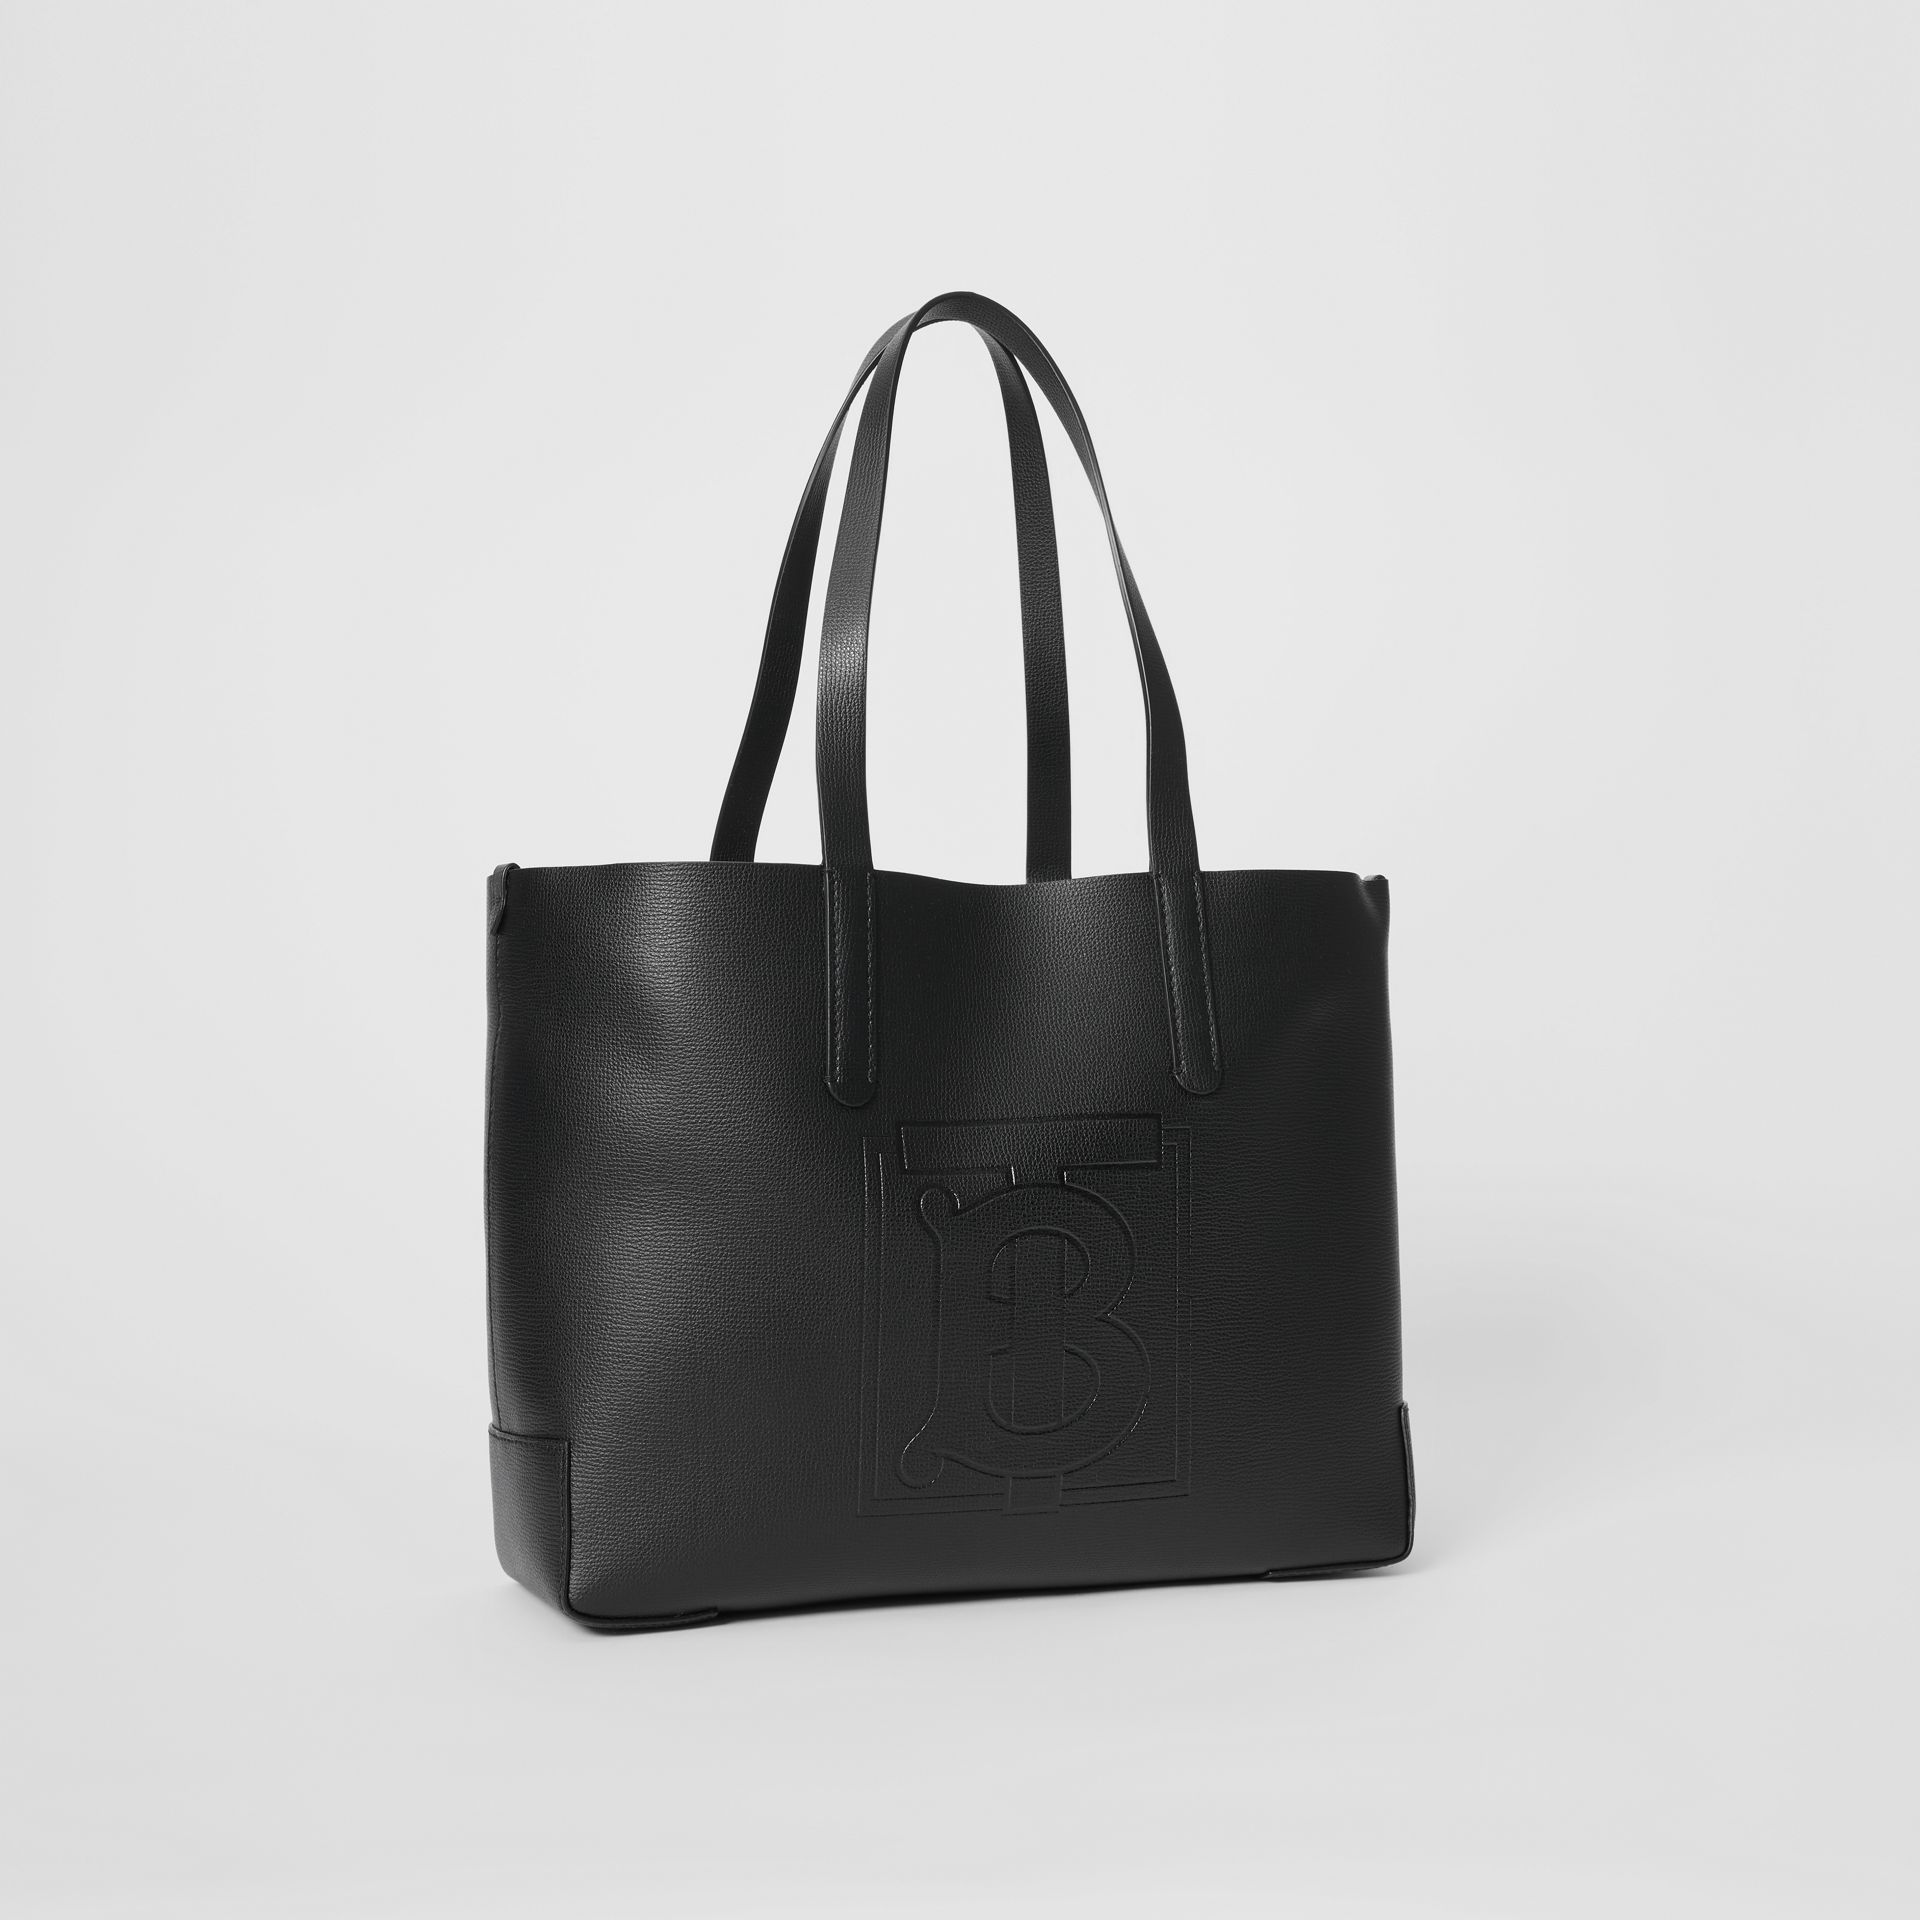 Embossed Monogram Motif Leather Tote in Black - Women | Burberry - gallery image 6